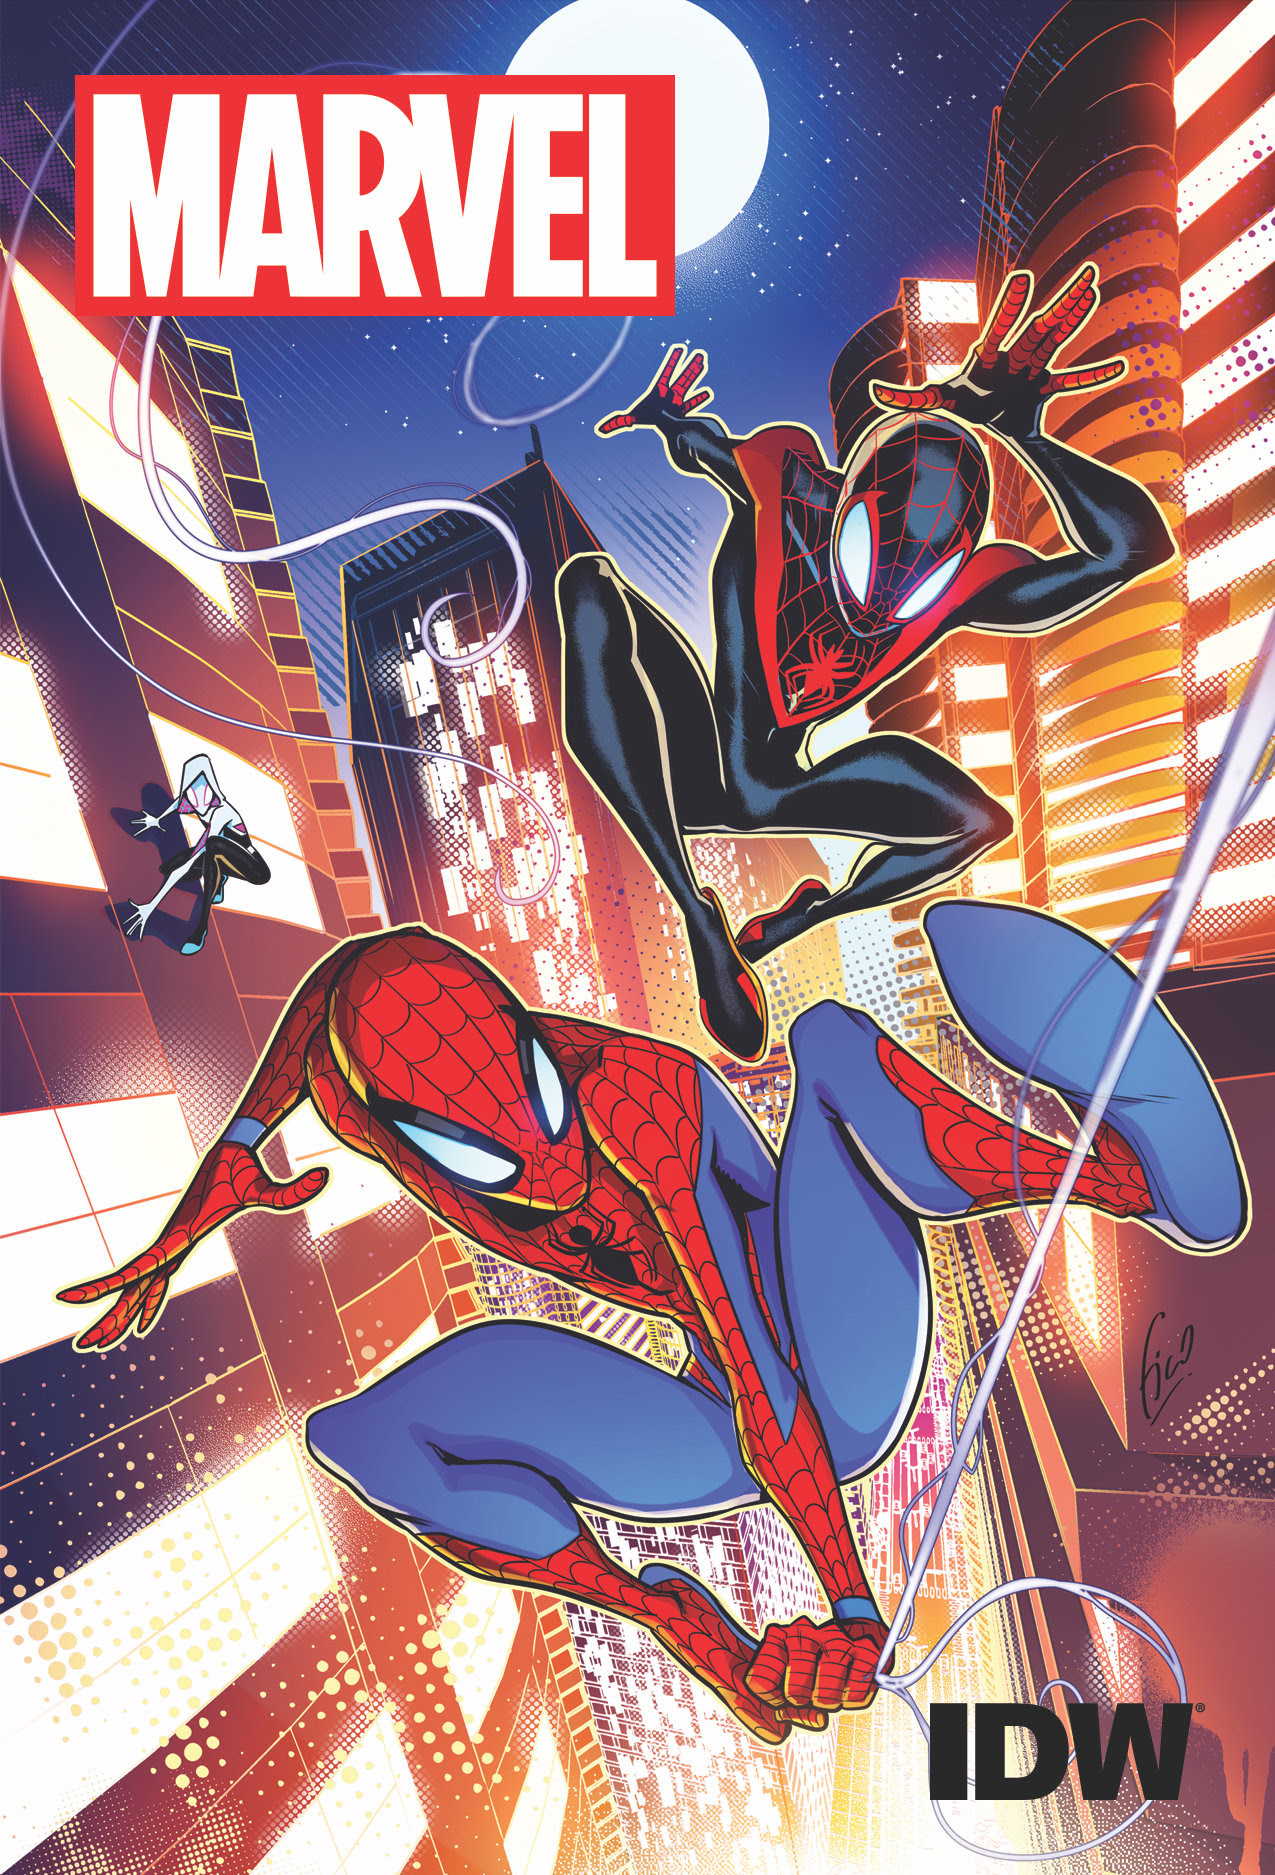 SPIDER-MAN (IDW) #1